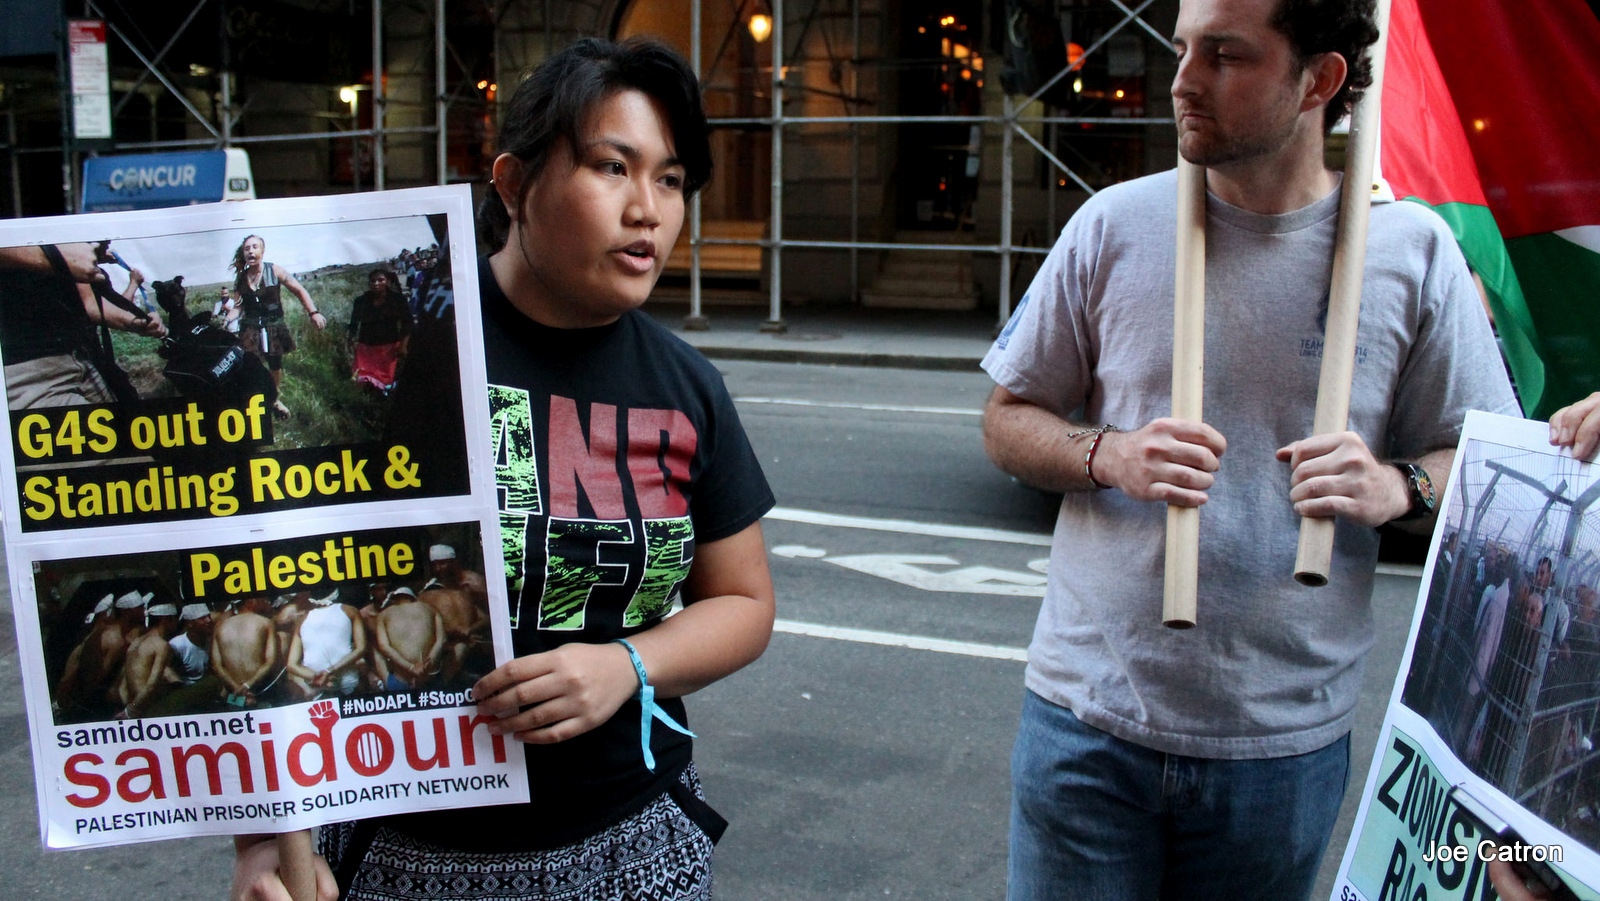 Activists rallied outside of the Manhattan, New York office of British-Danish security conglomerate G4S, before marching twice through the building's lobby, to protest the company's services to the Dakota Access Pipeline and Israel's prison system on Friday, September 16, 2016.